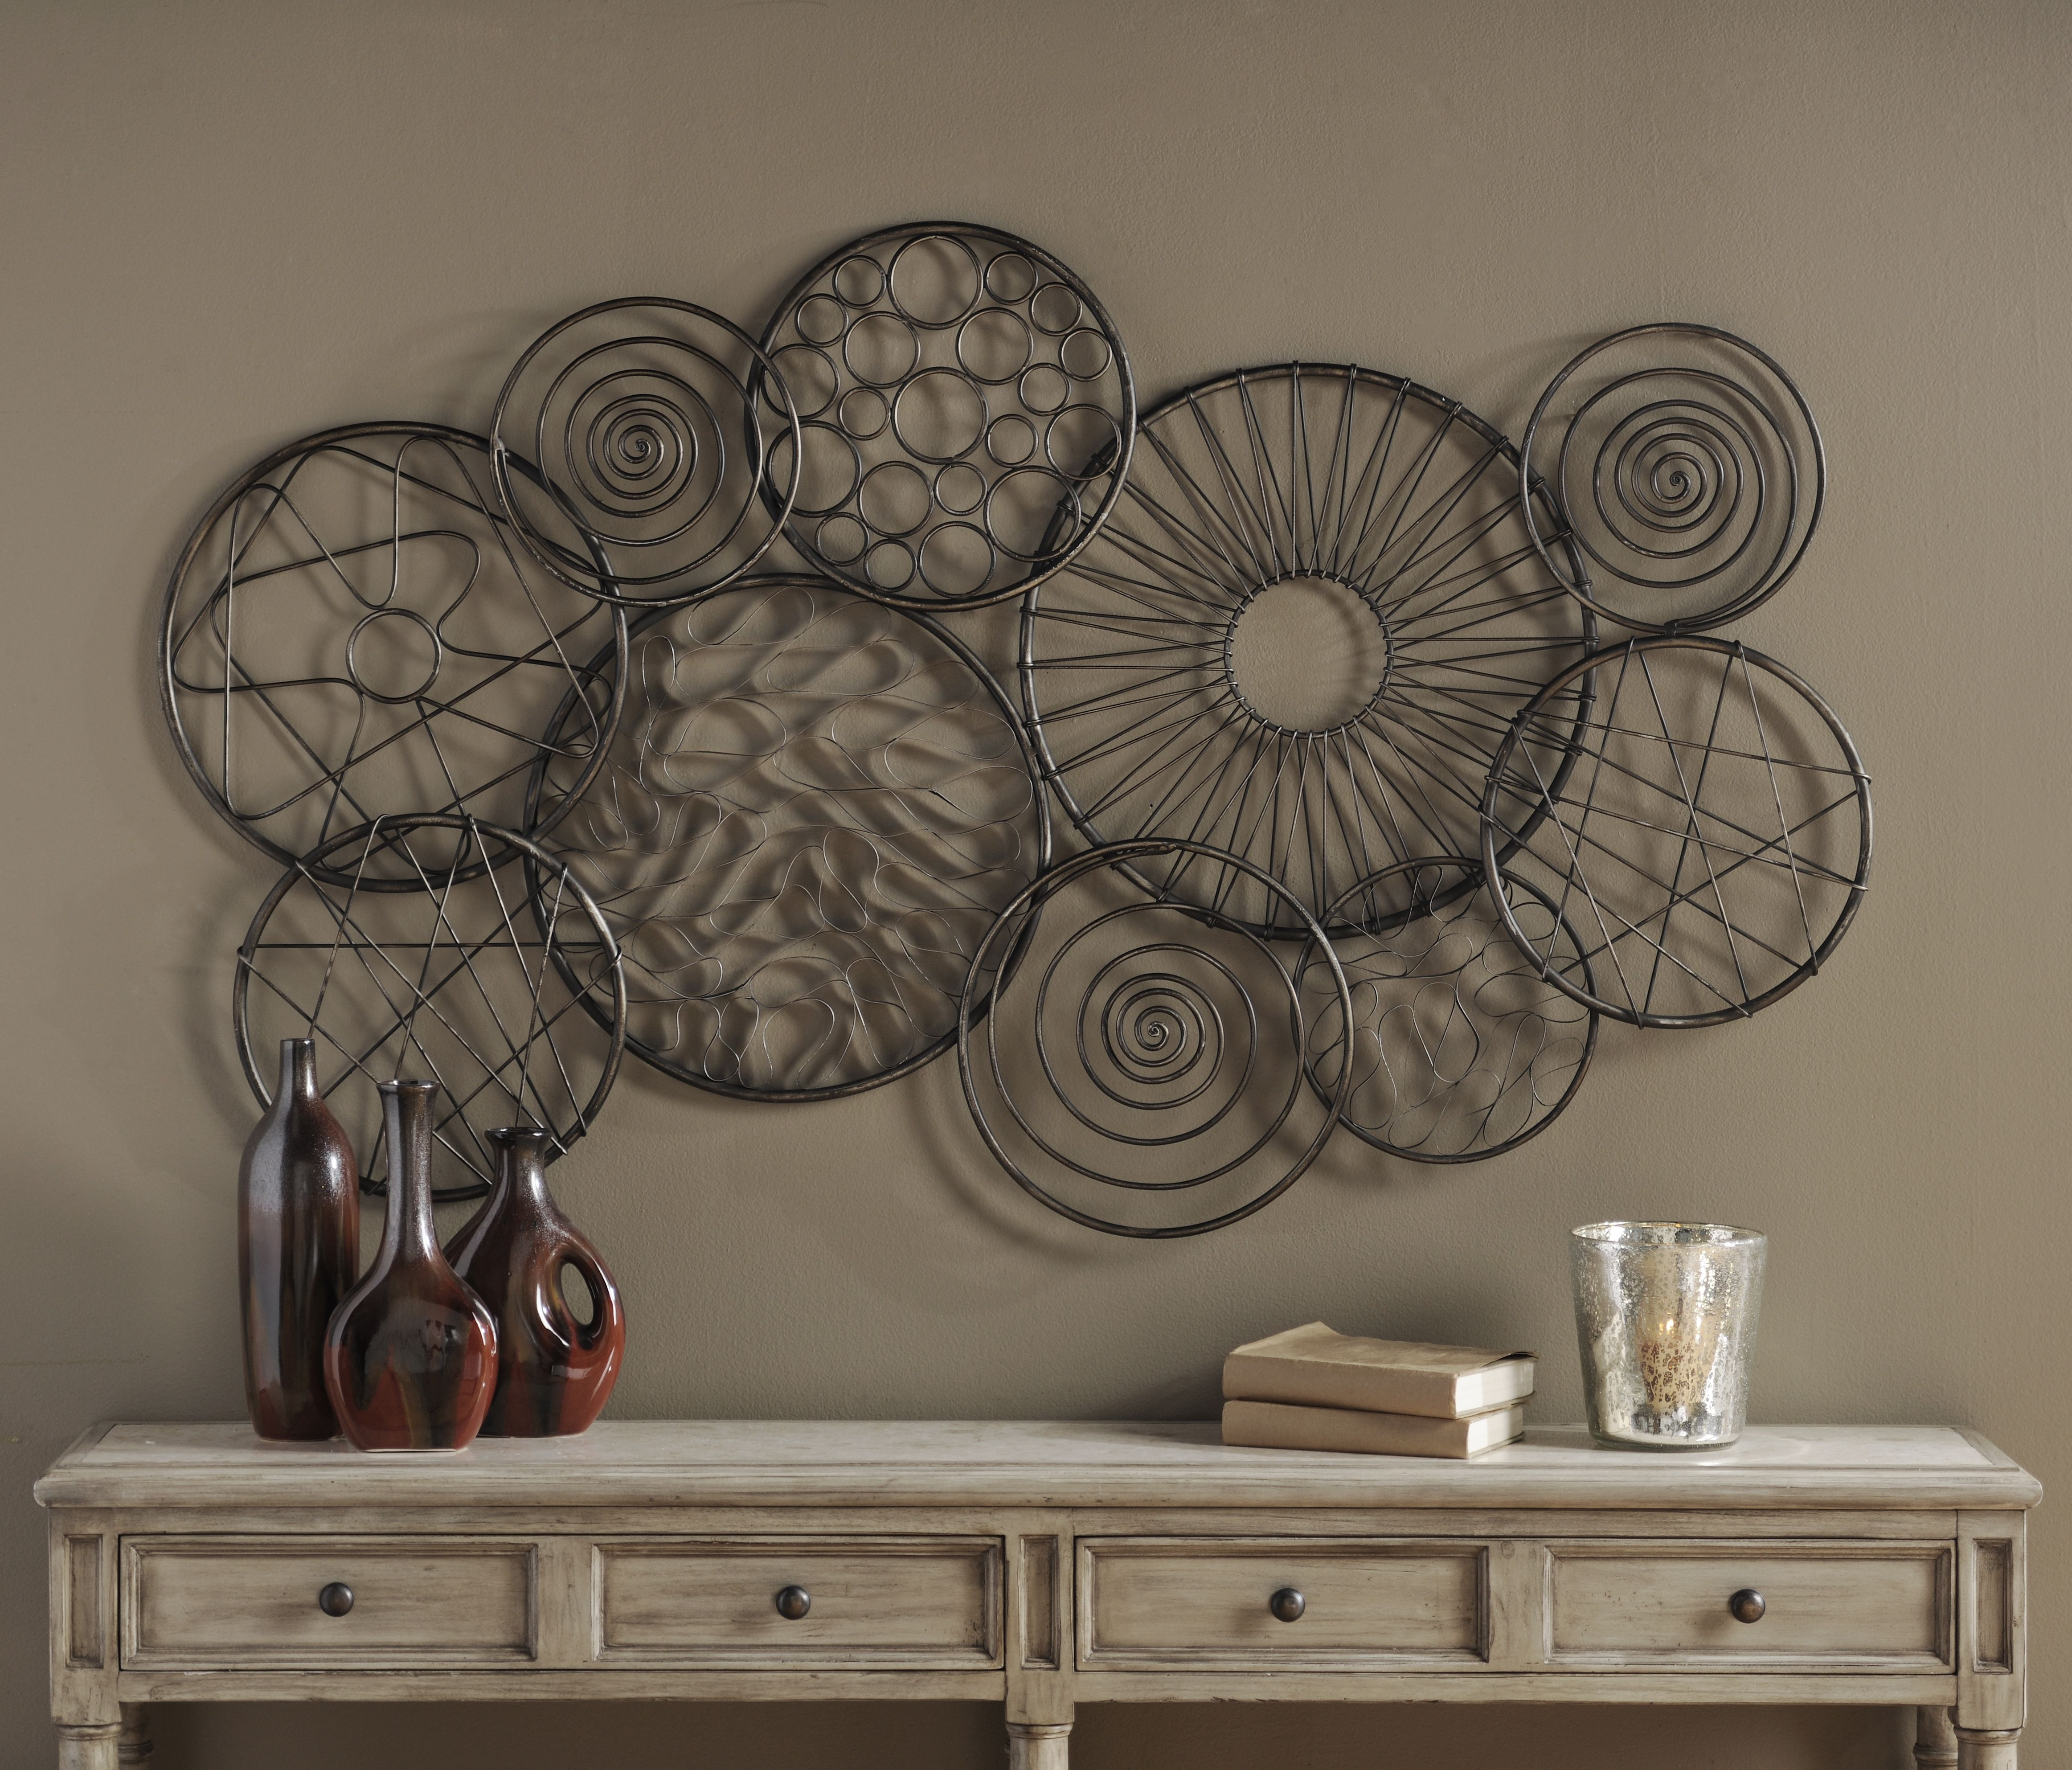 Metal Emma Swirls Plaque | Adornos, Decoración y Ideas